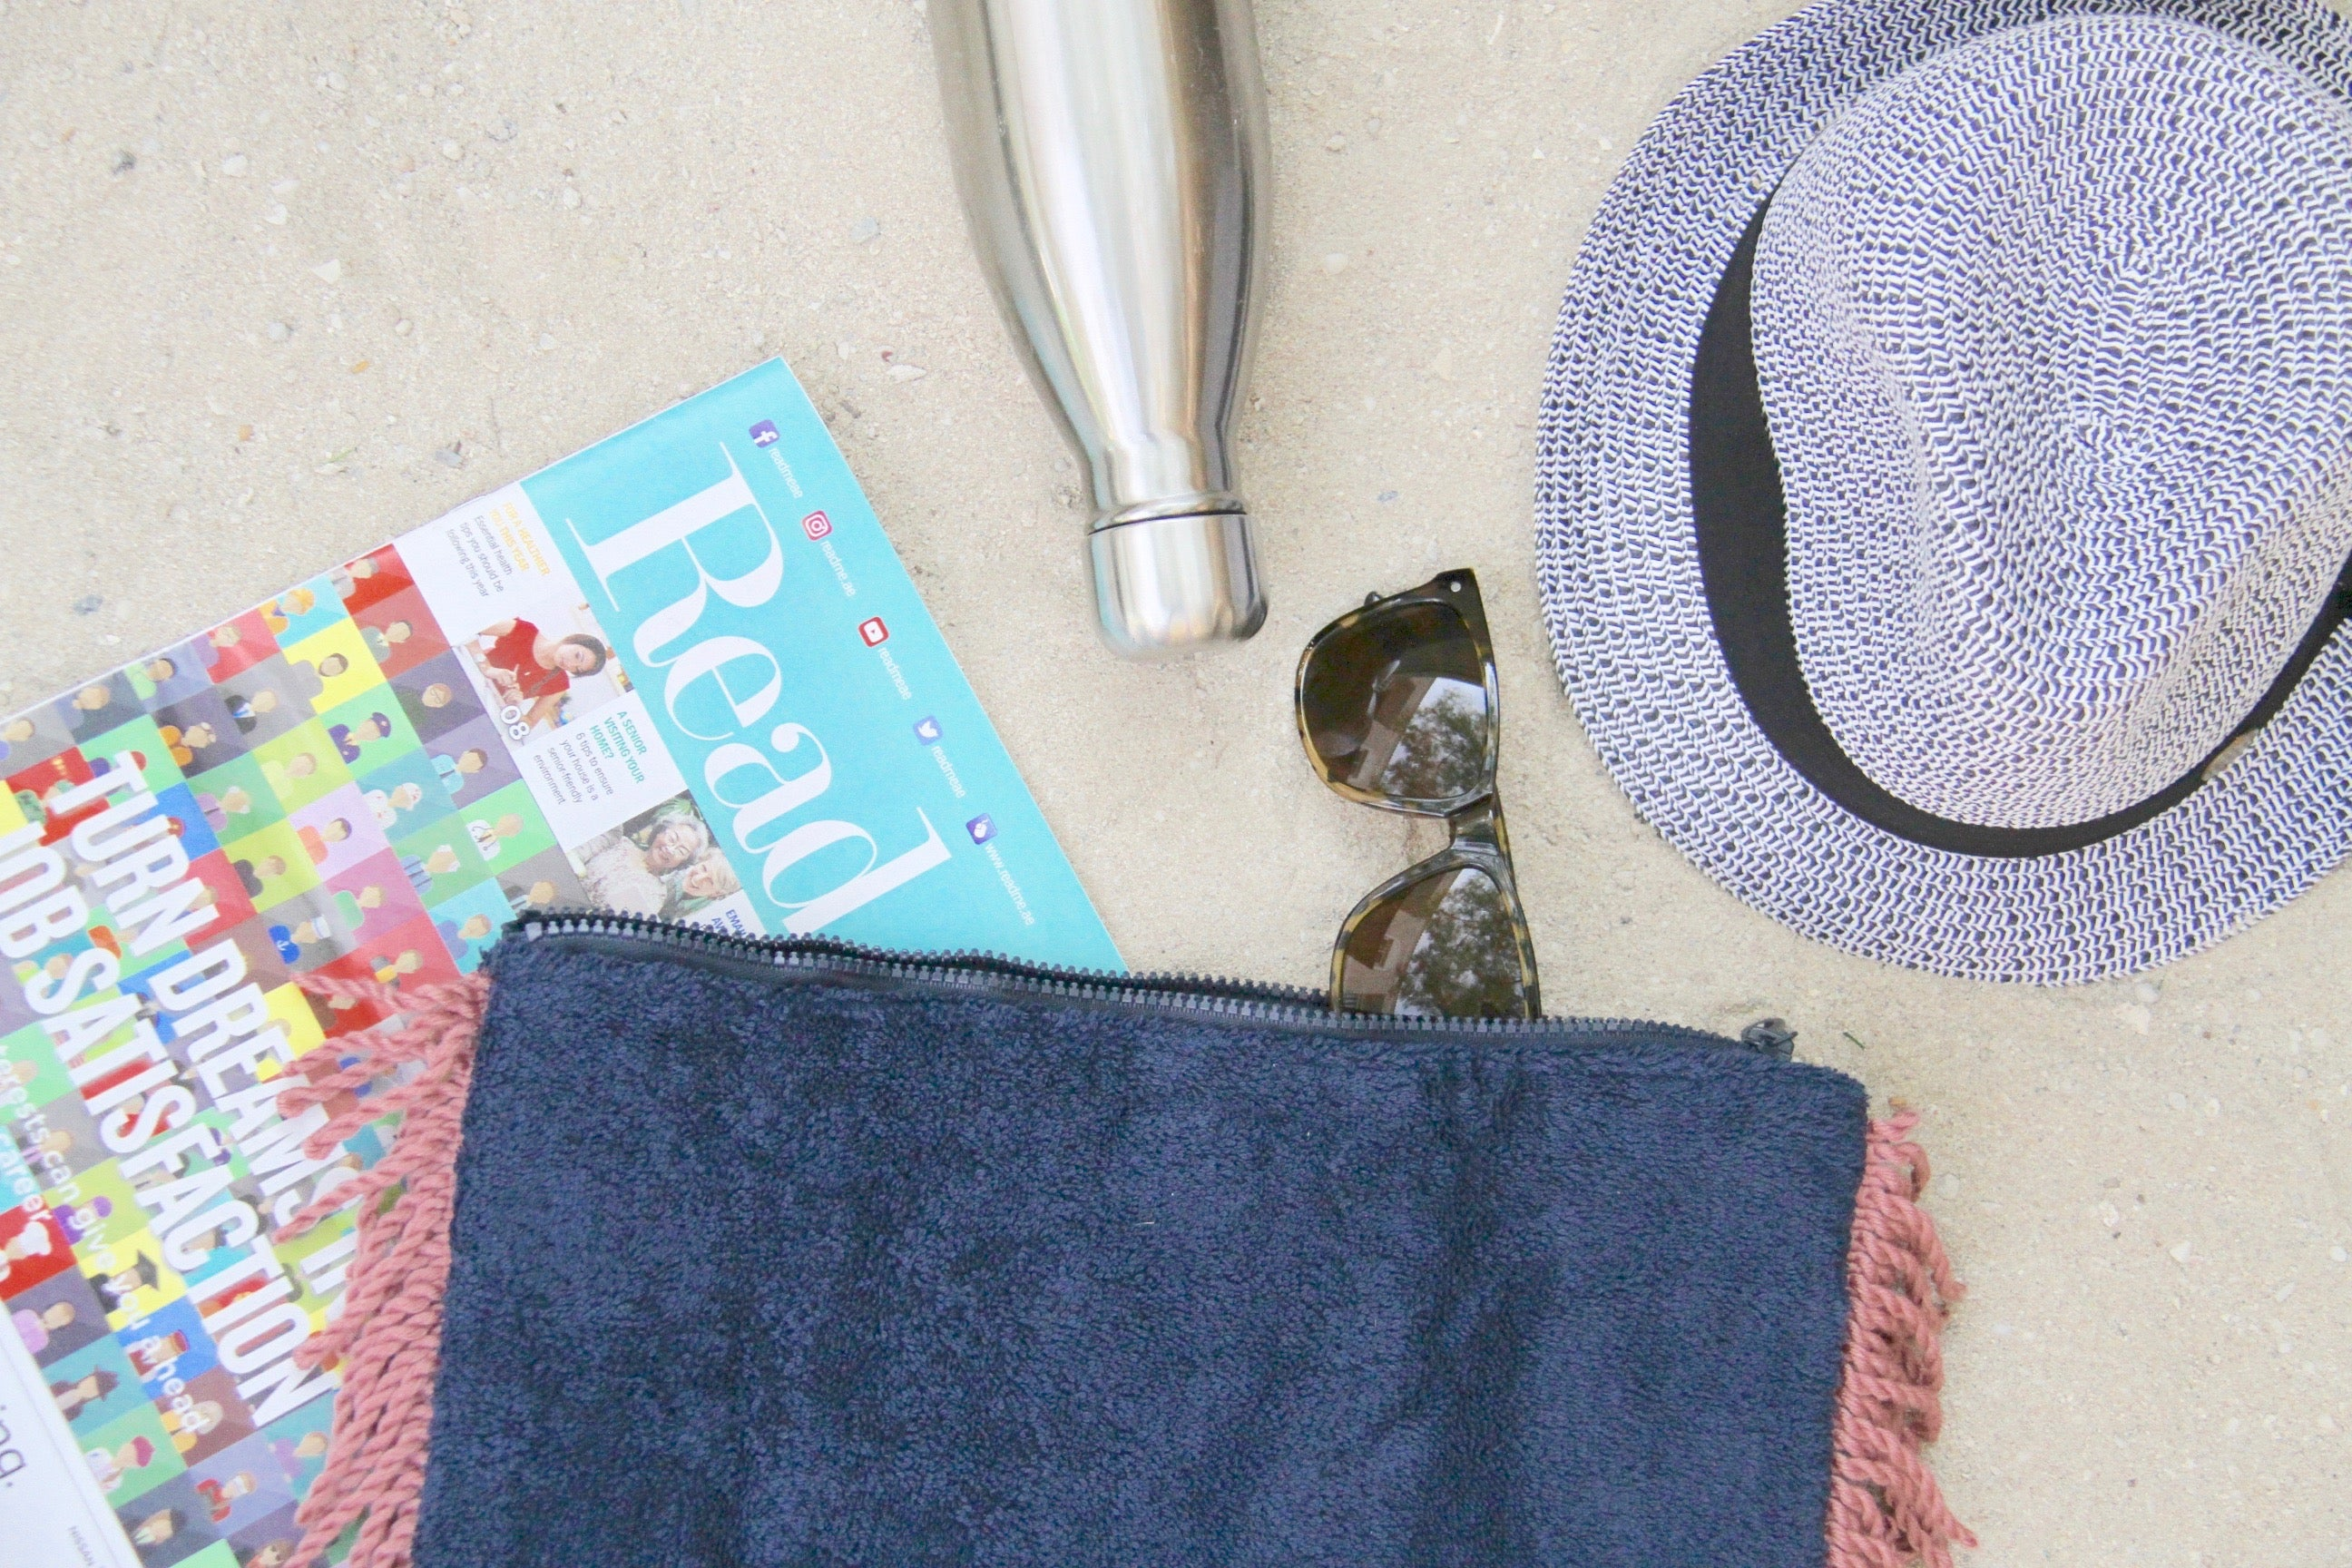 Beach Towel Clutch Bag in blue with pink